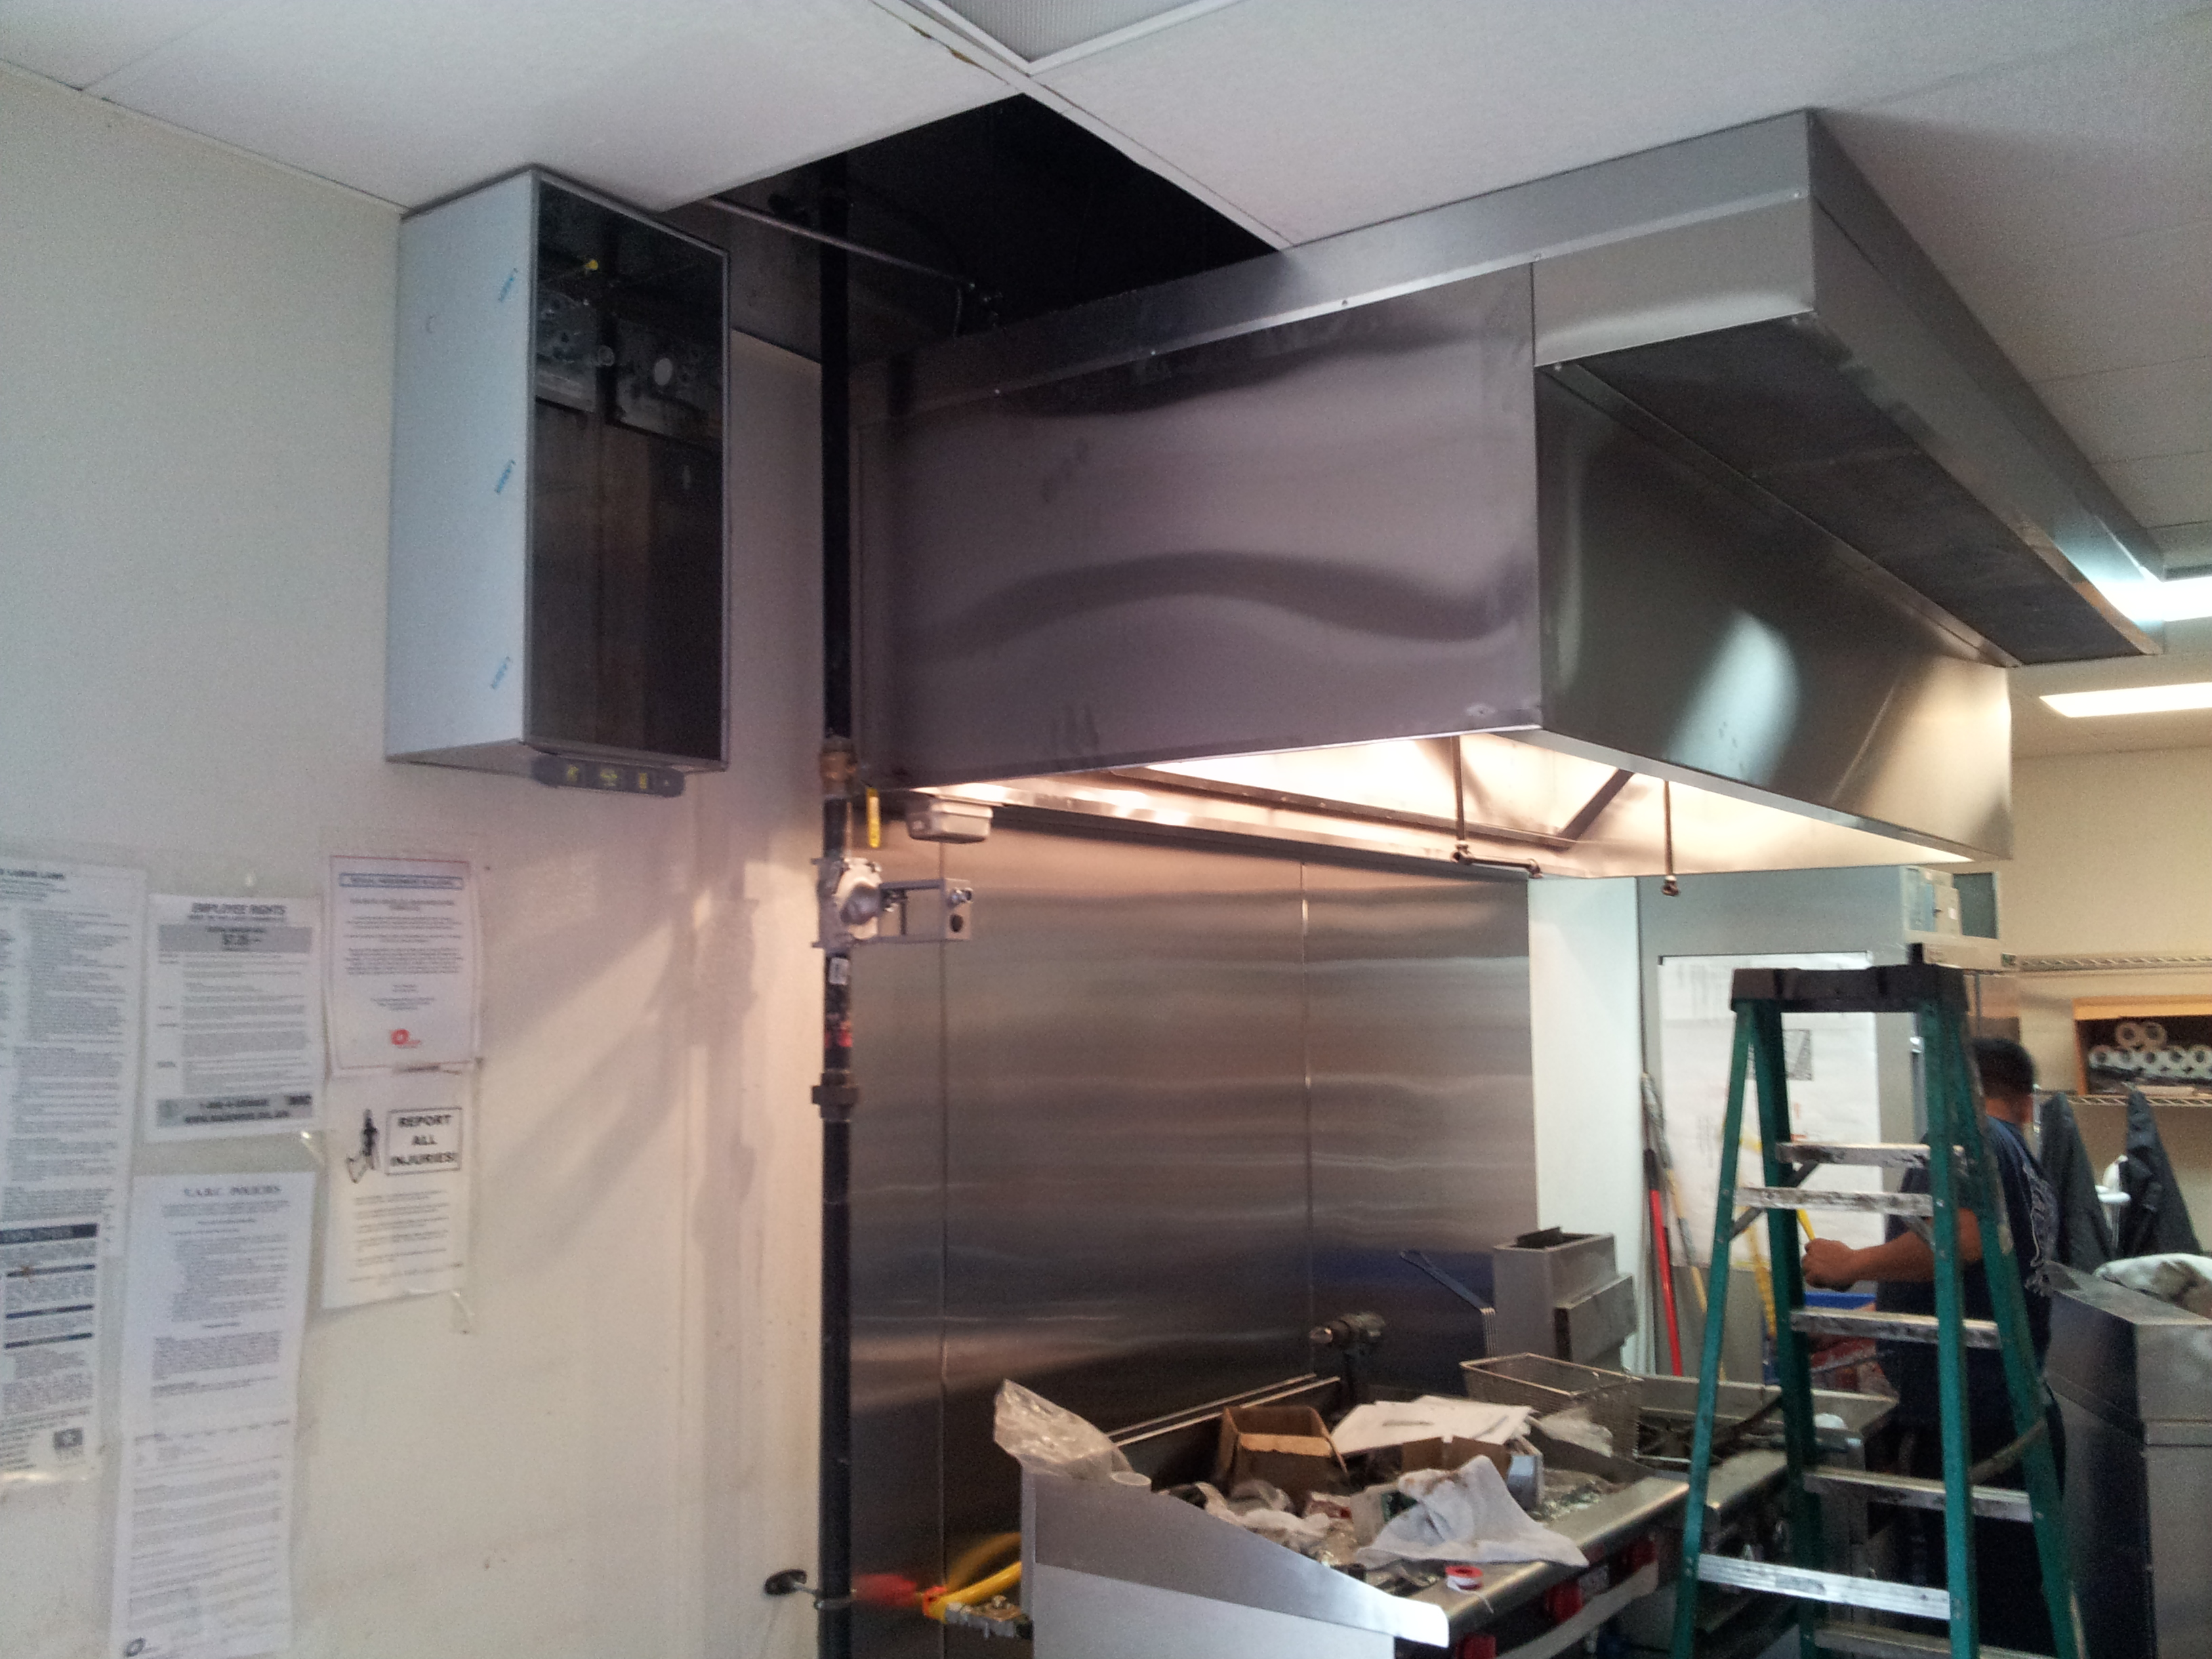 Kitchen Hood Fire Suppression System Kitchen Hood Fire Systems. Kitchen  Hood Fire Systems. Source Abuse Report